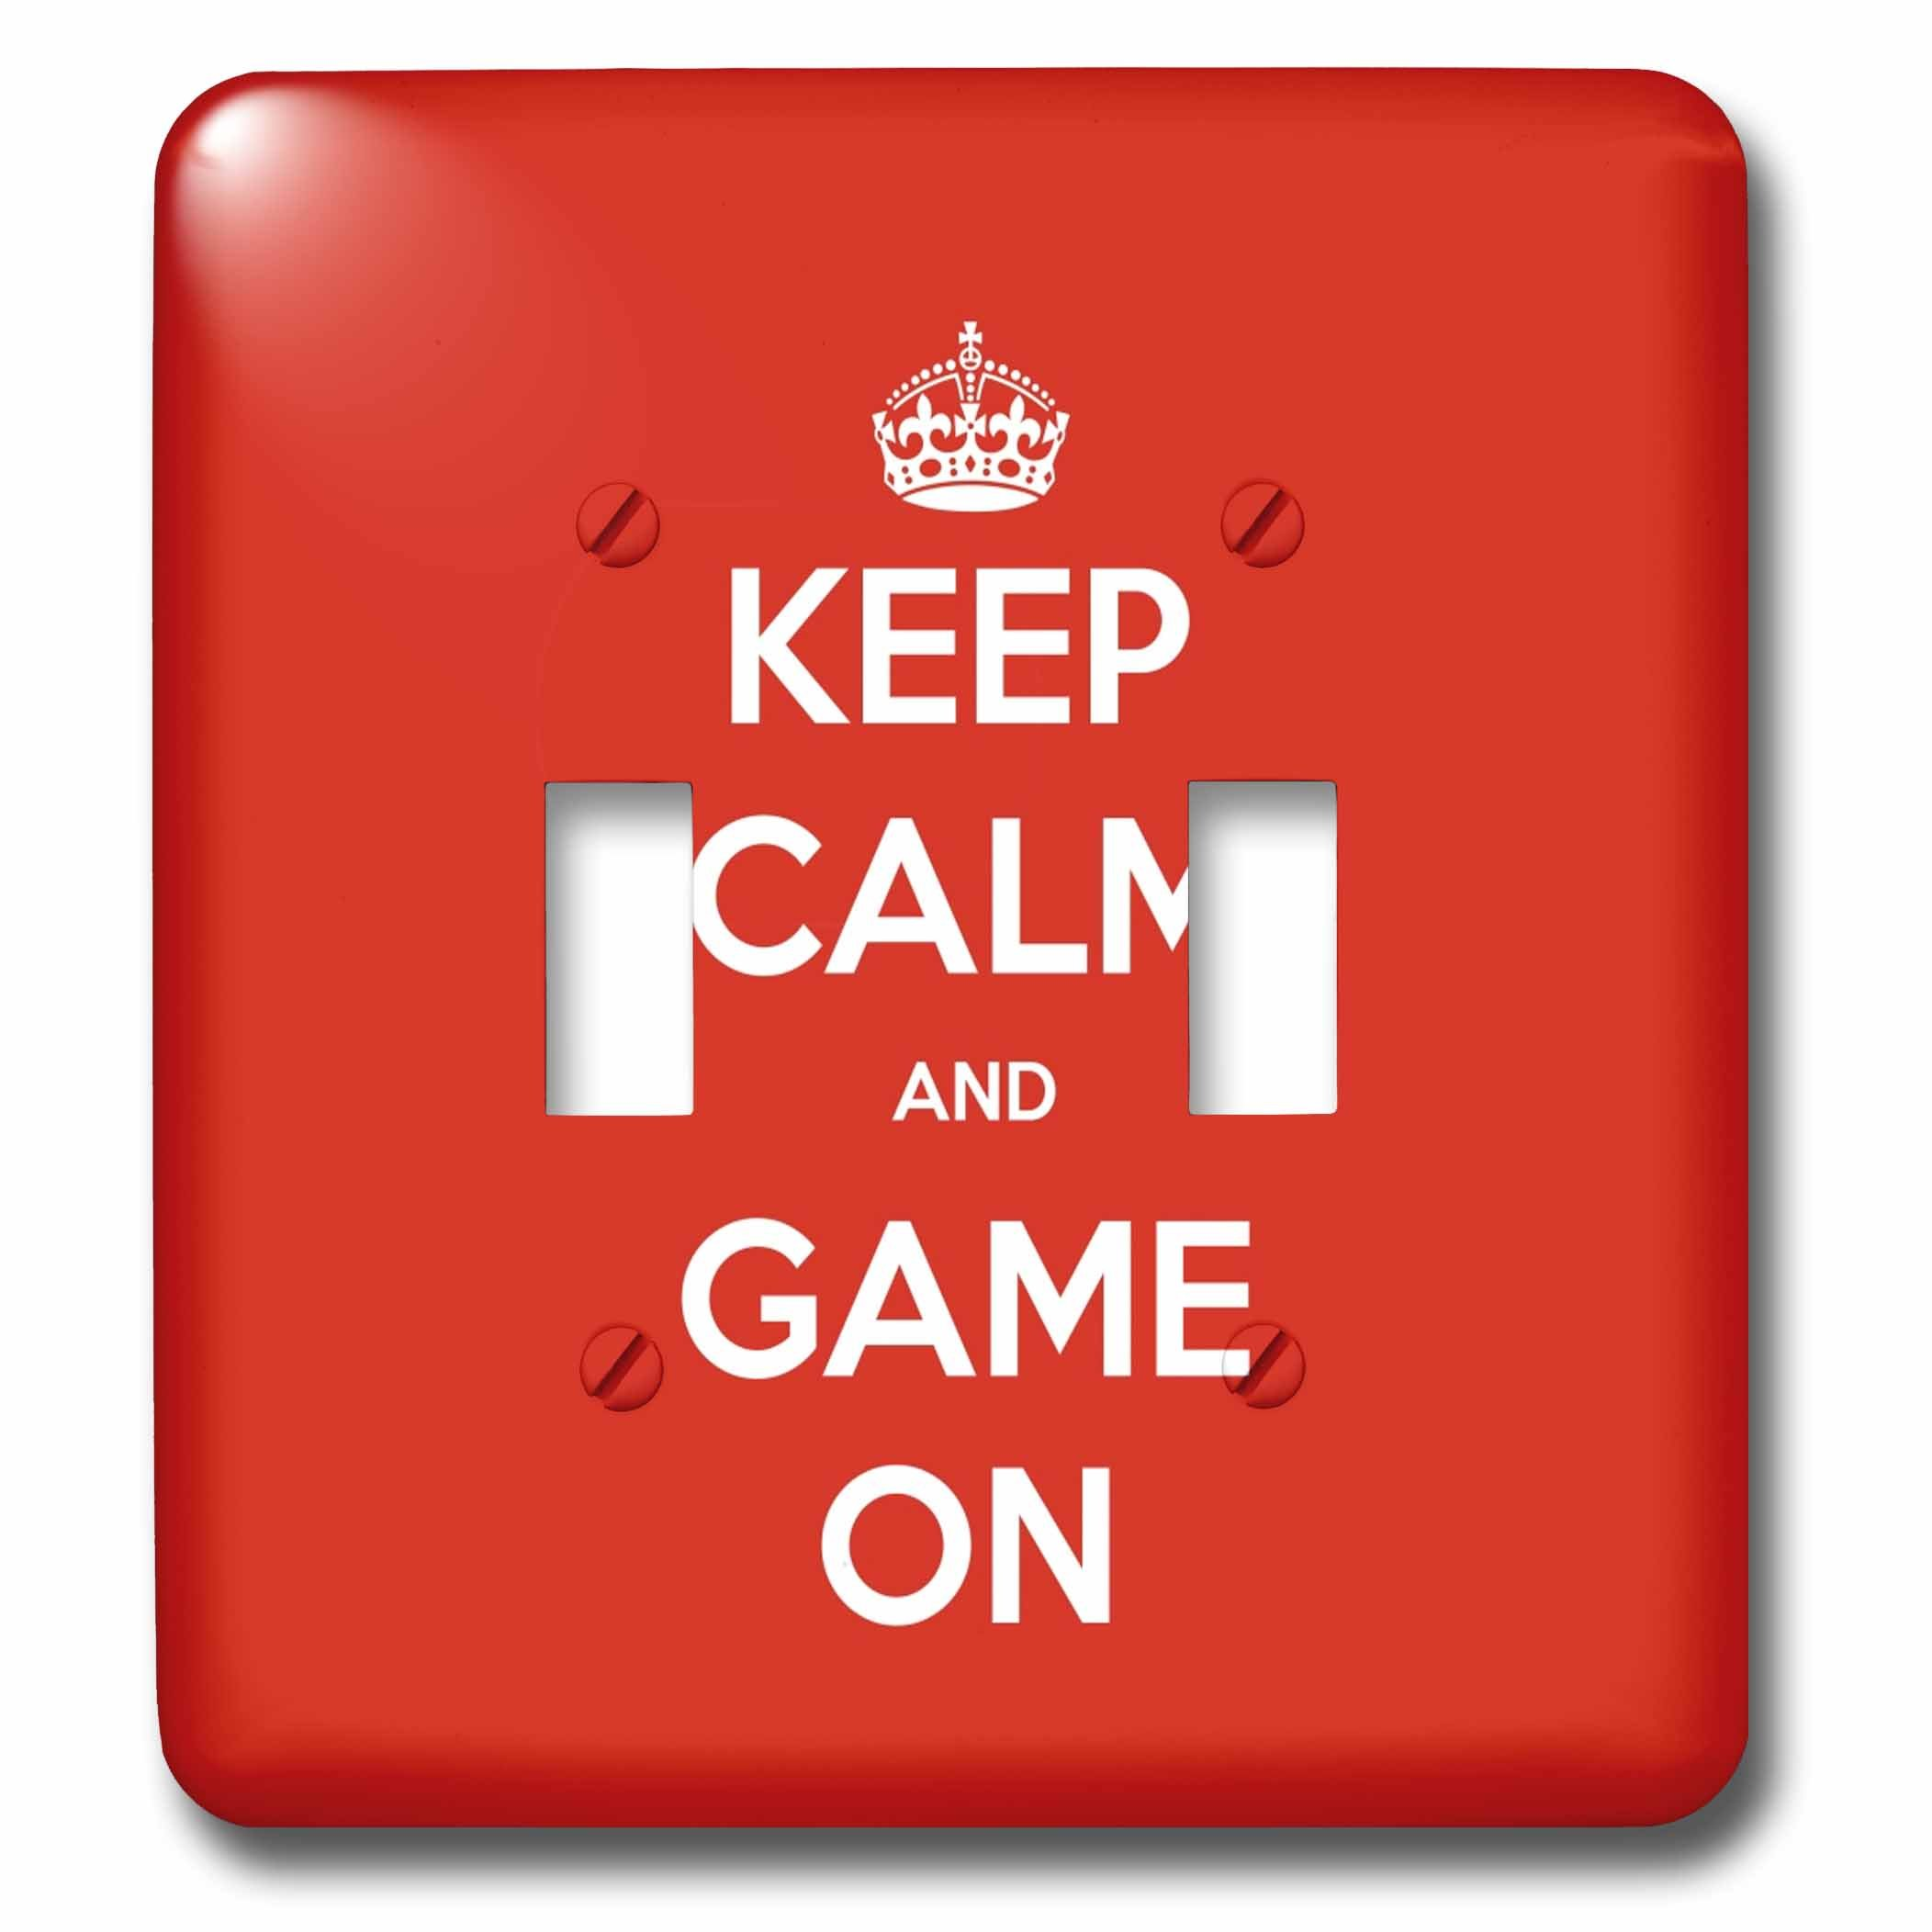 3dRose Gaming - Keep Calm And Game On Red - Light Switch Covers - double toggle switch (lsp_261103_2)